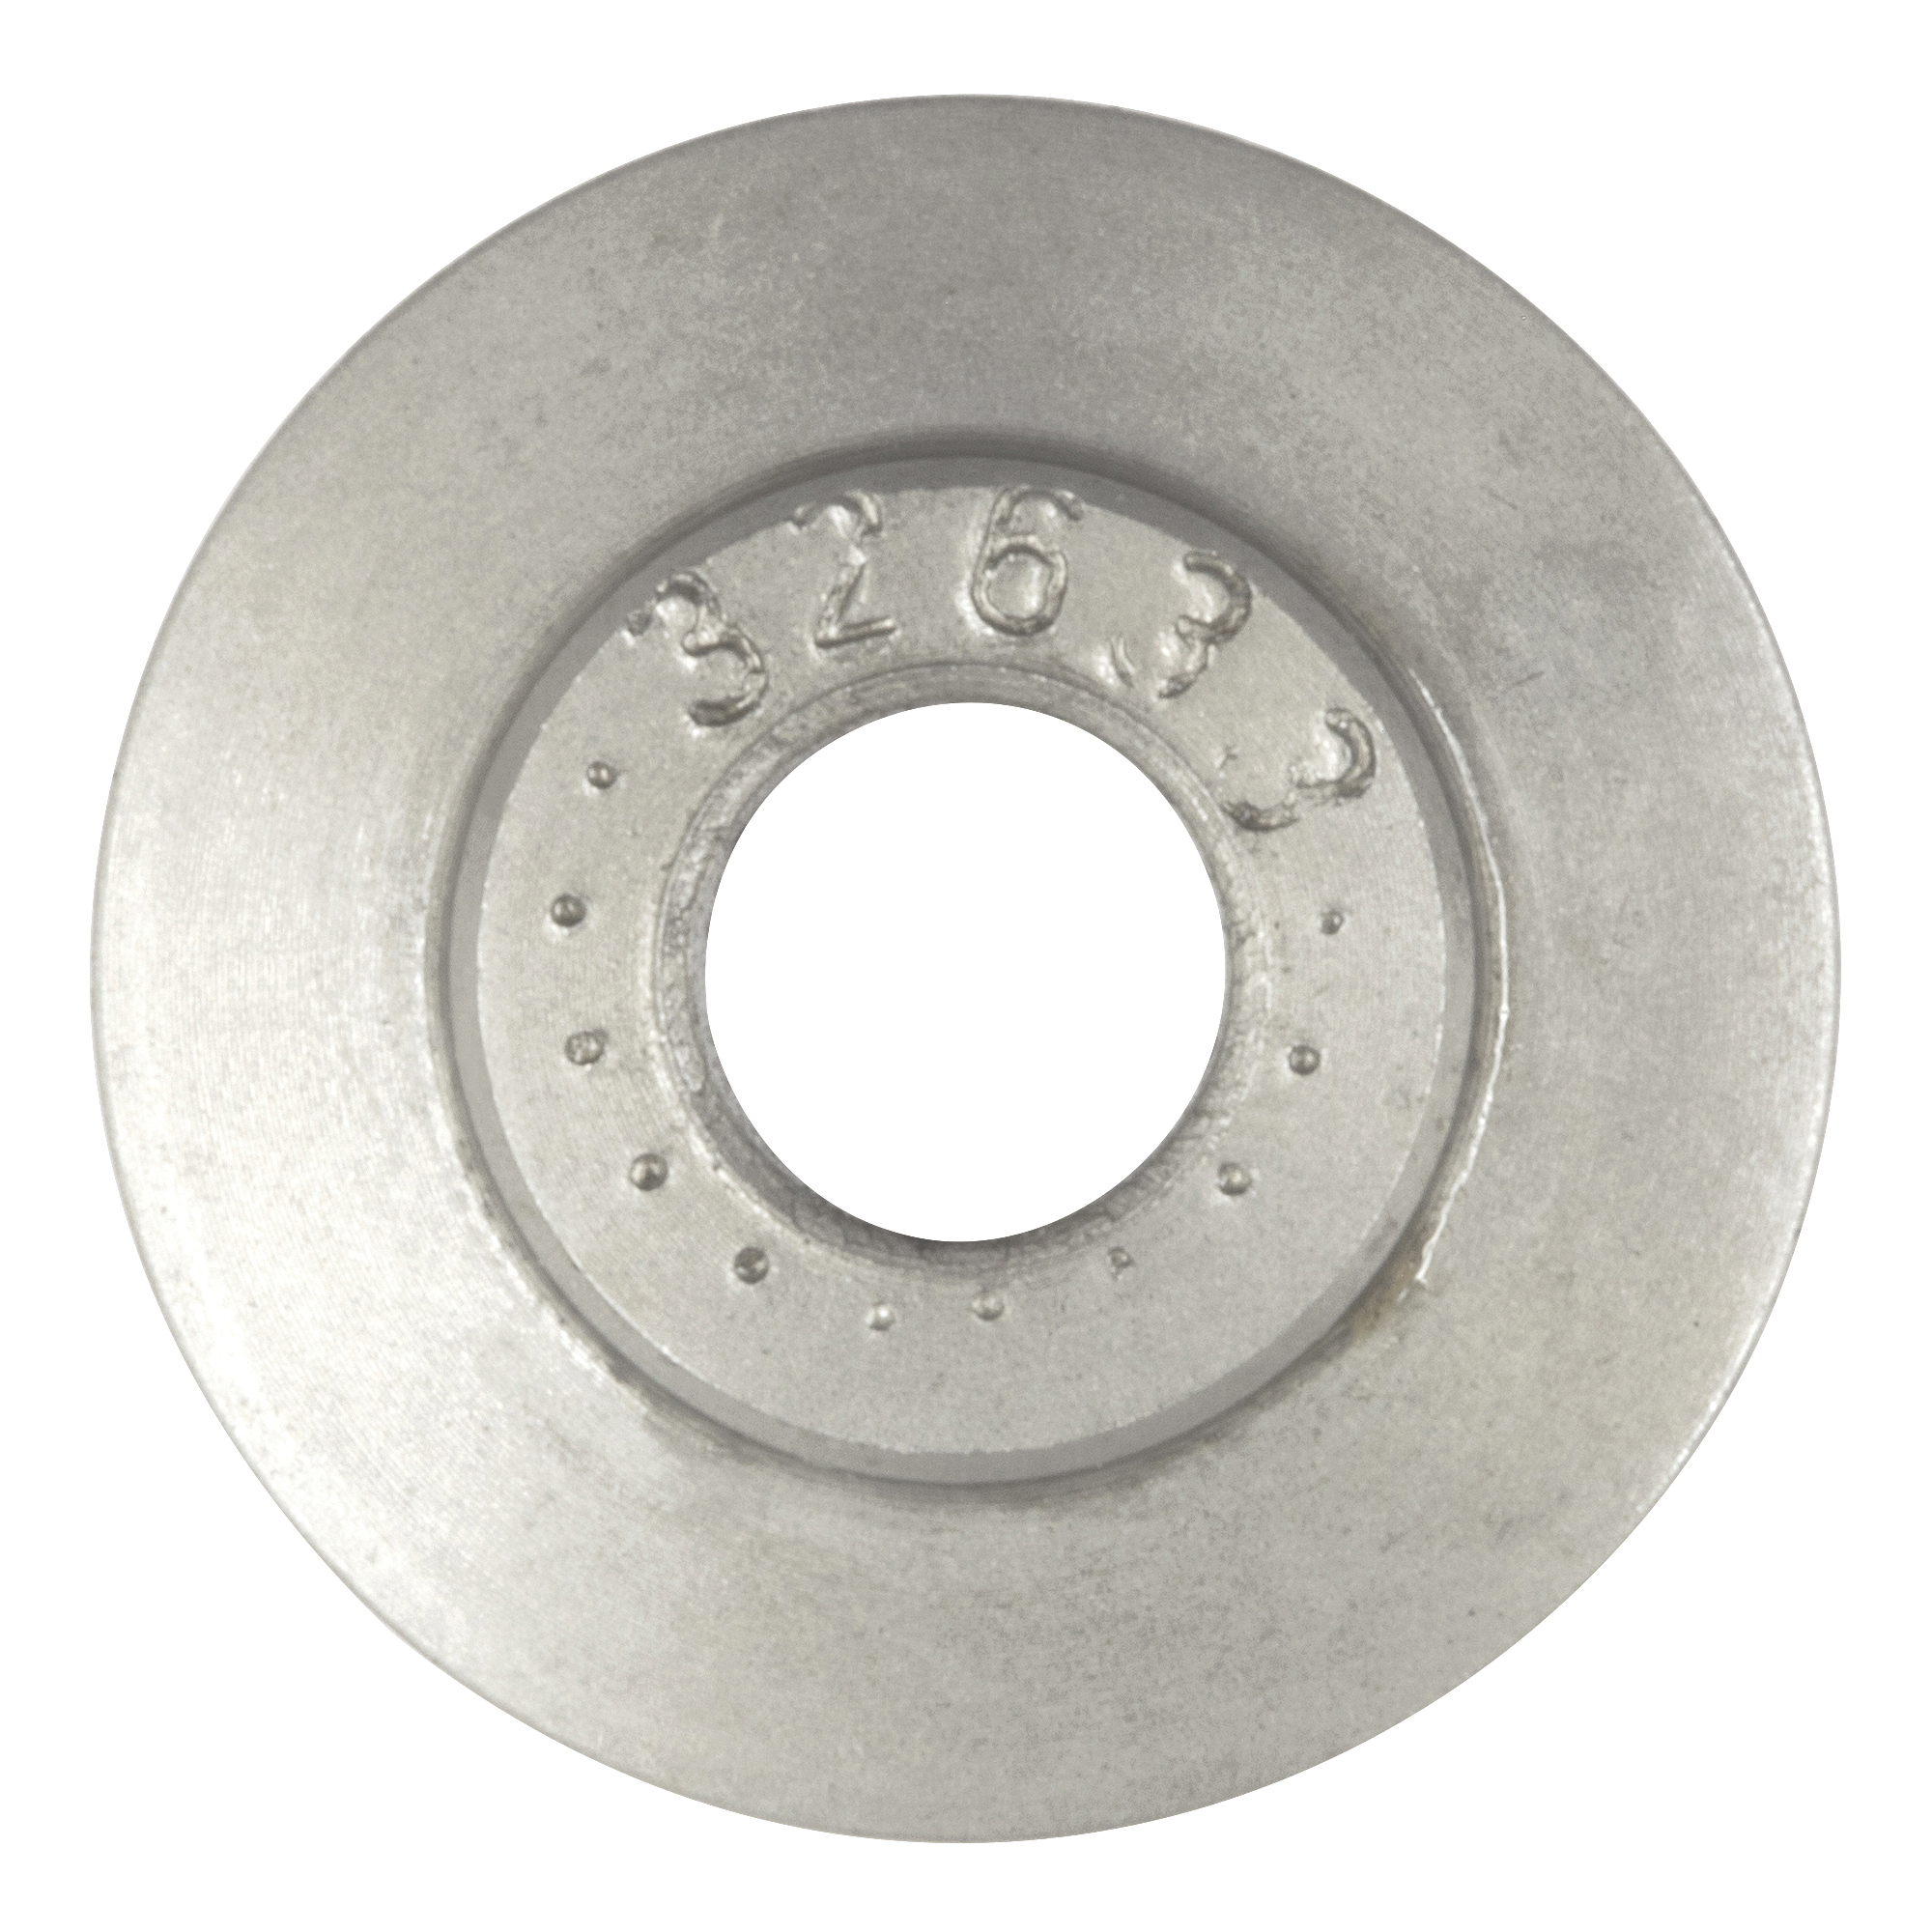 Reed 03661 Replacement Cutter Wheel, 0.127 in Blade Exposure, For Use With Reed MC1, Imperial Eastman 127-F/FA/FB, TC1050 and 227-FA Cutter